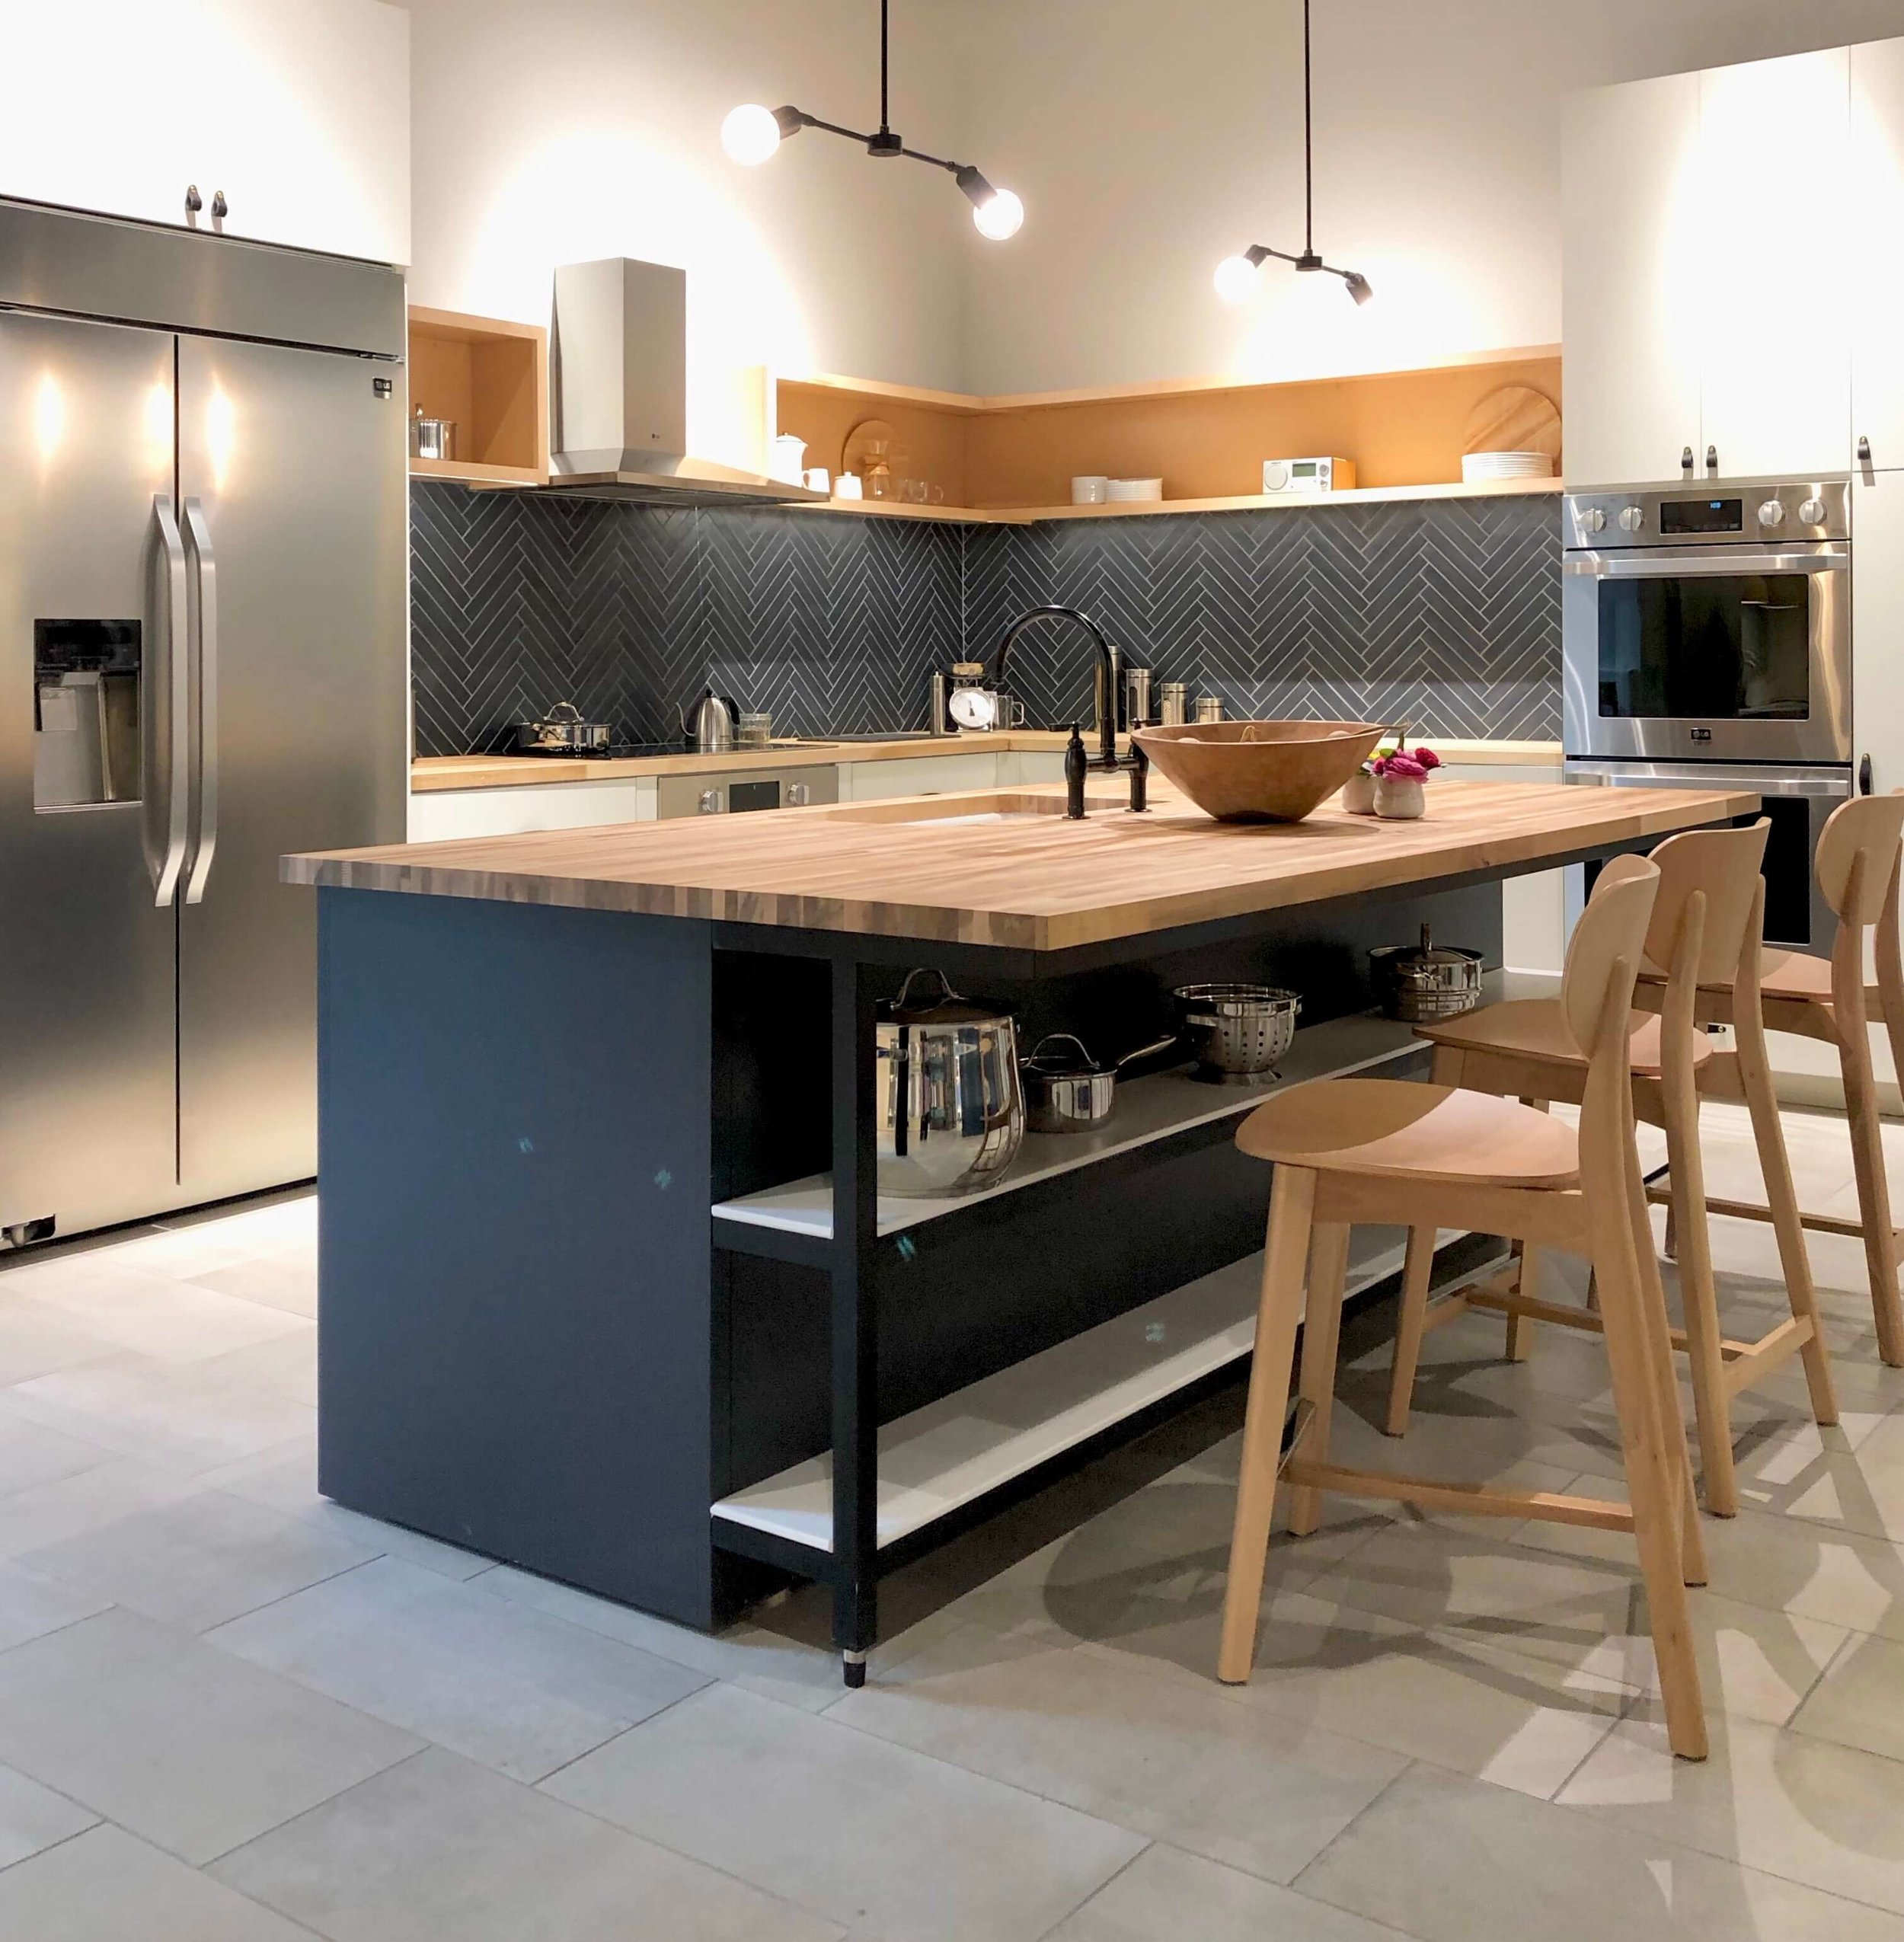 Kitchen with butcher block kitchen island, herringbone tile backsplash, open shelving and LG Appliances | SKS Appliances Experience and Design Center, Napa